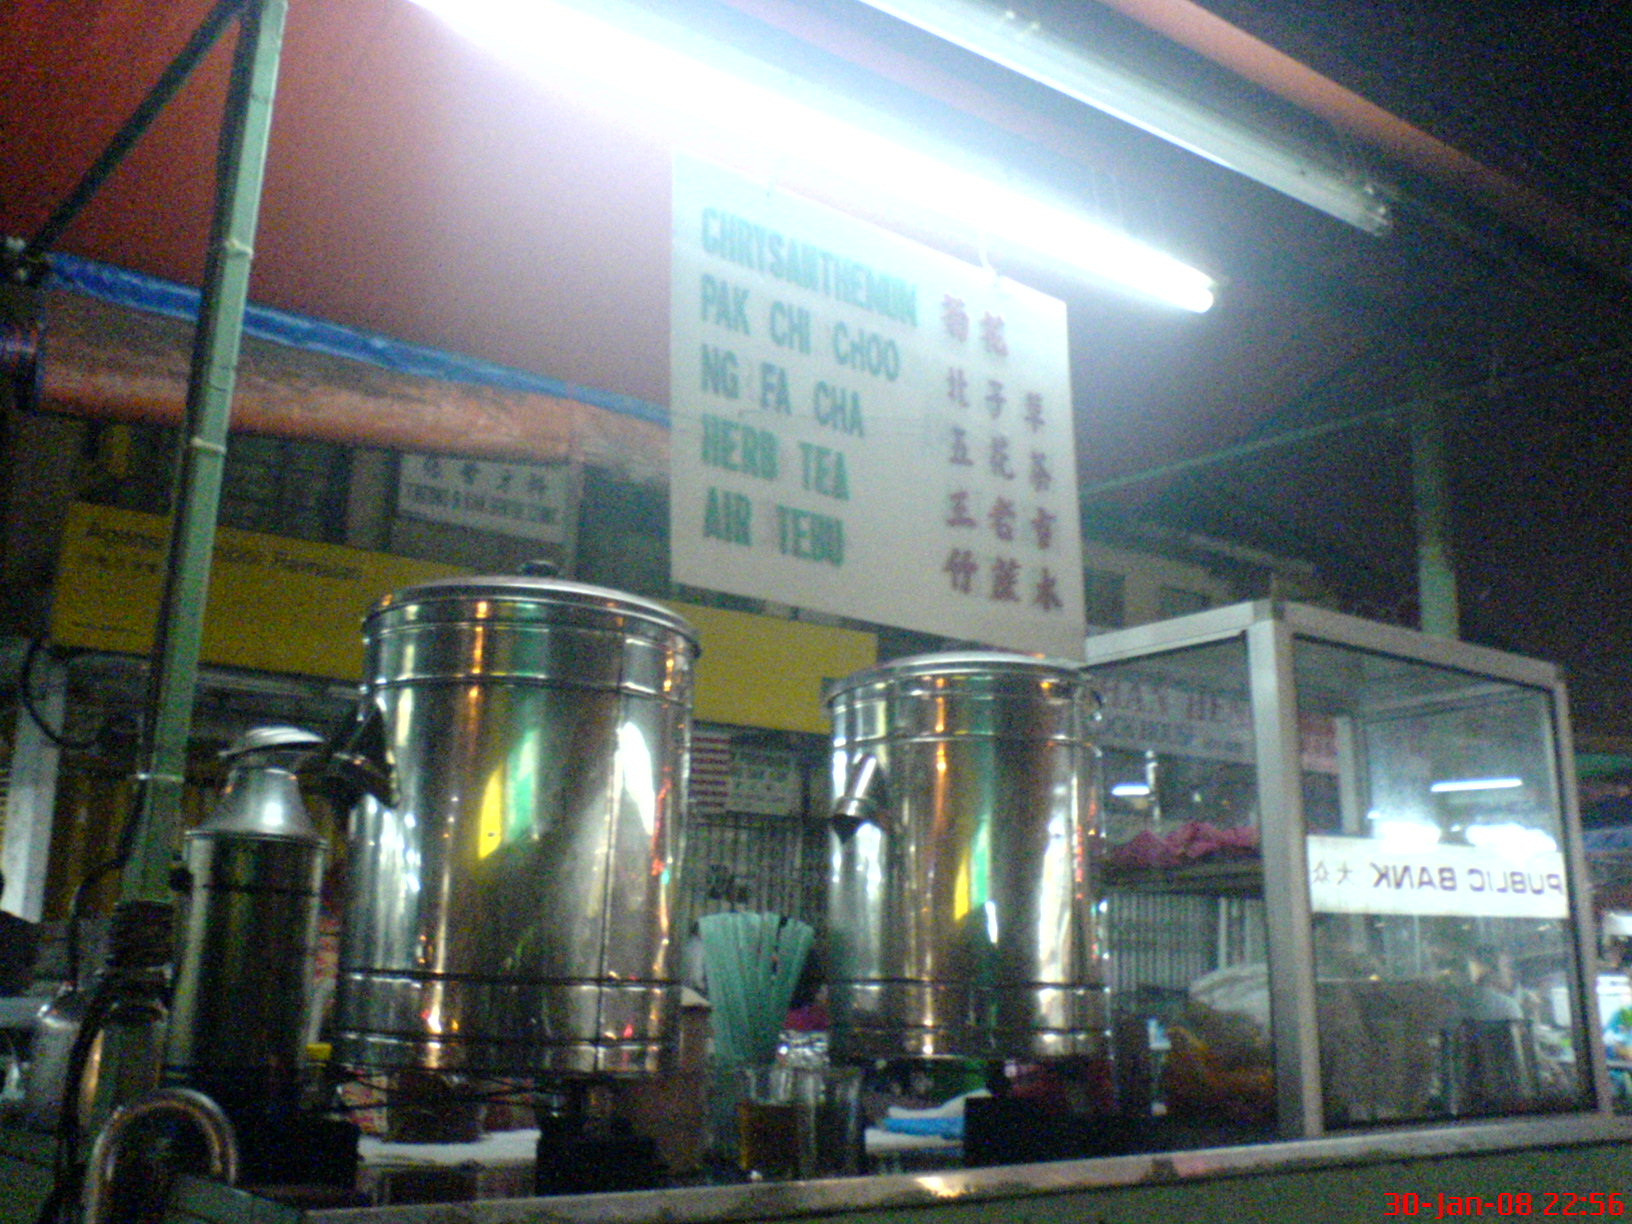 Old herbal drinks @ PJ Old Town